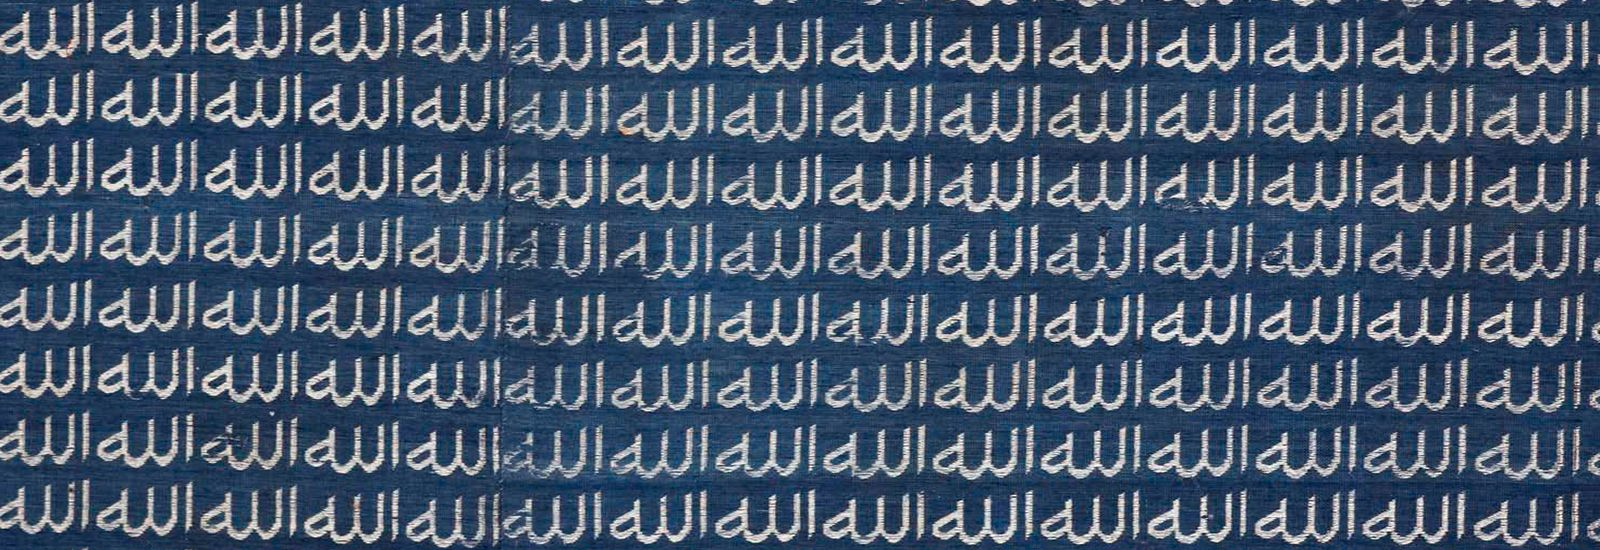 Close up of lettering on a blue background